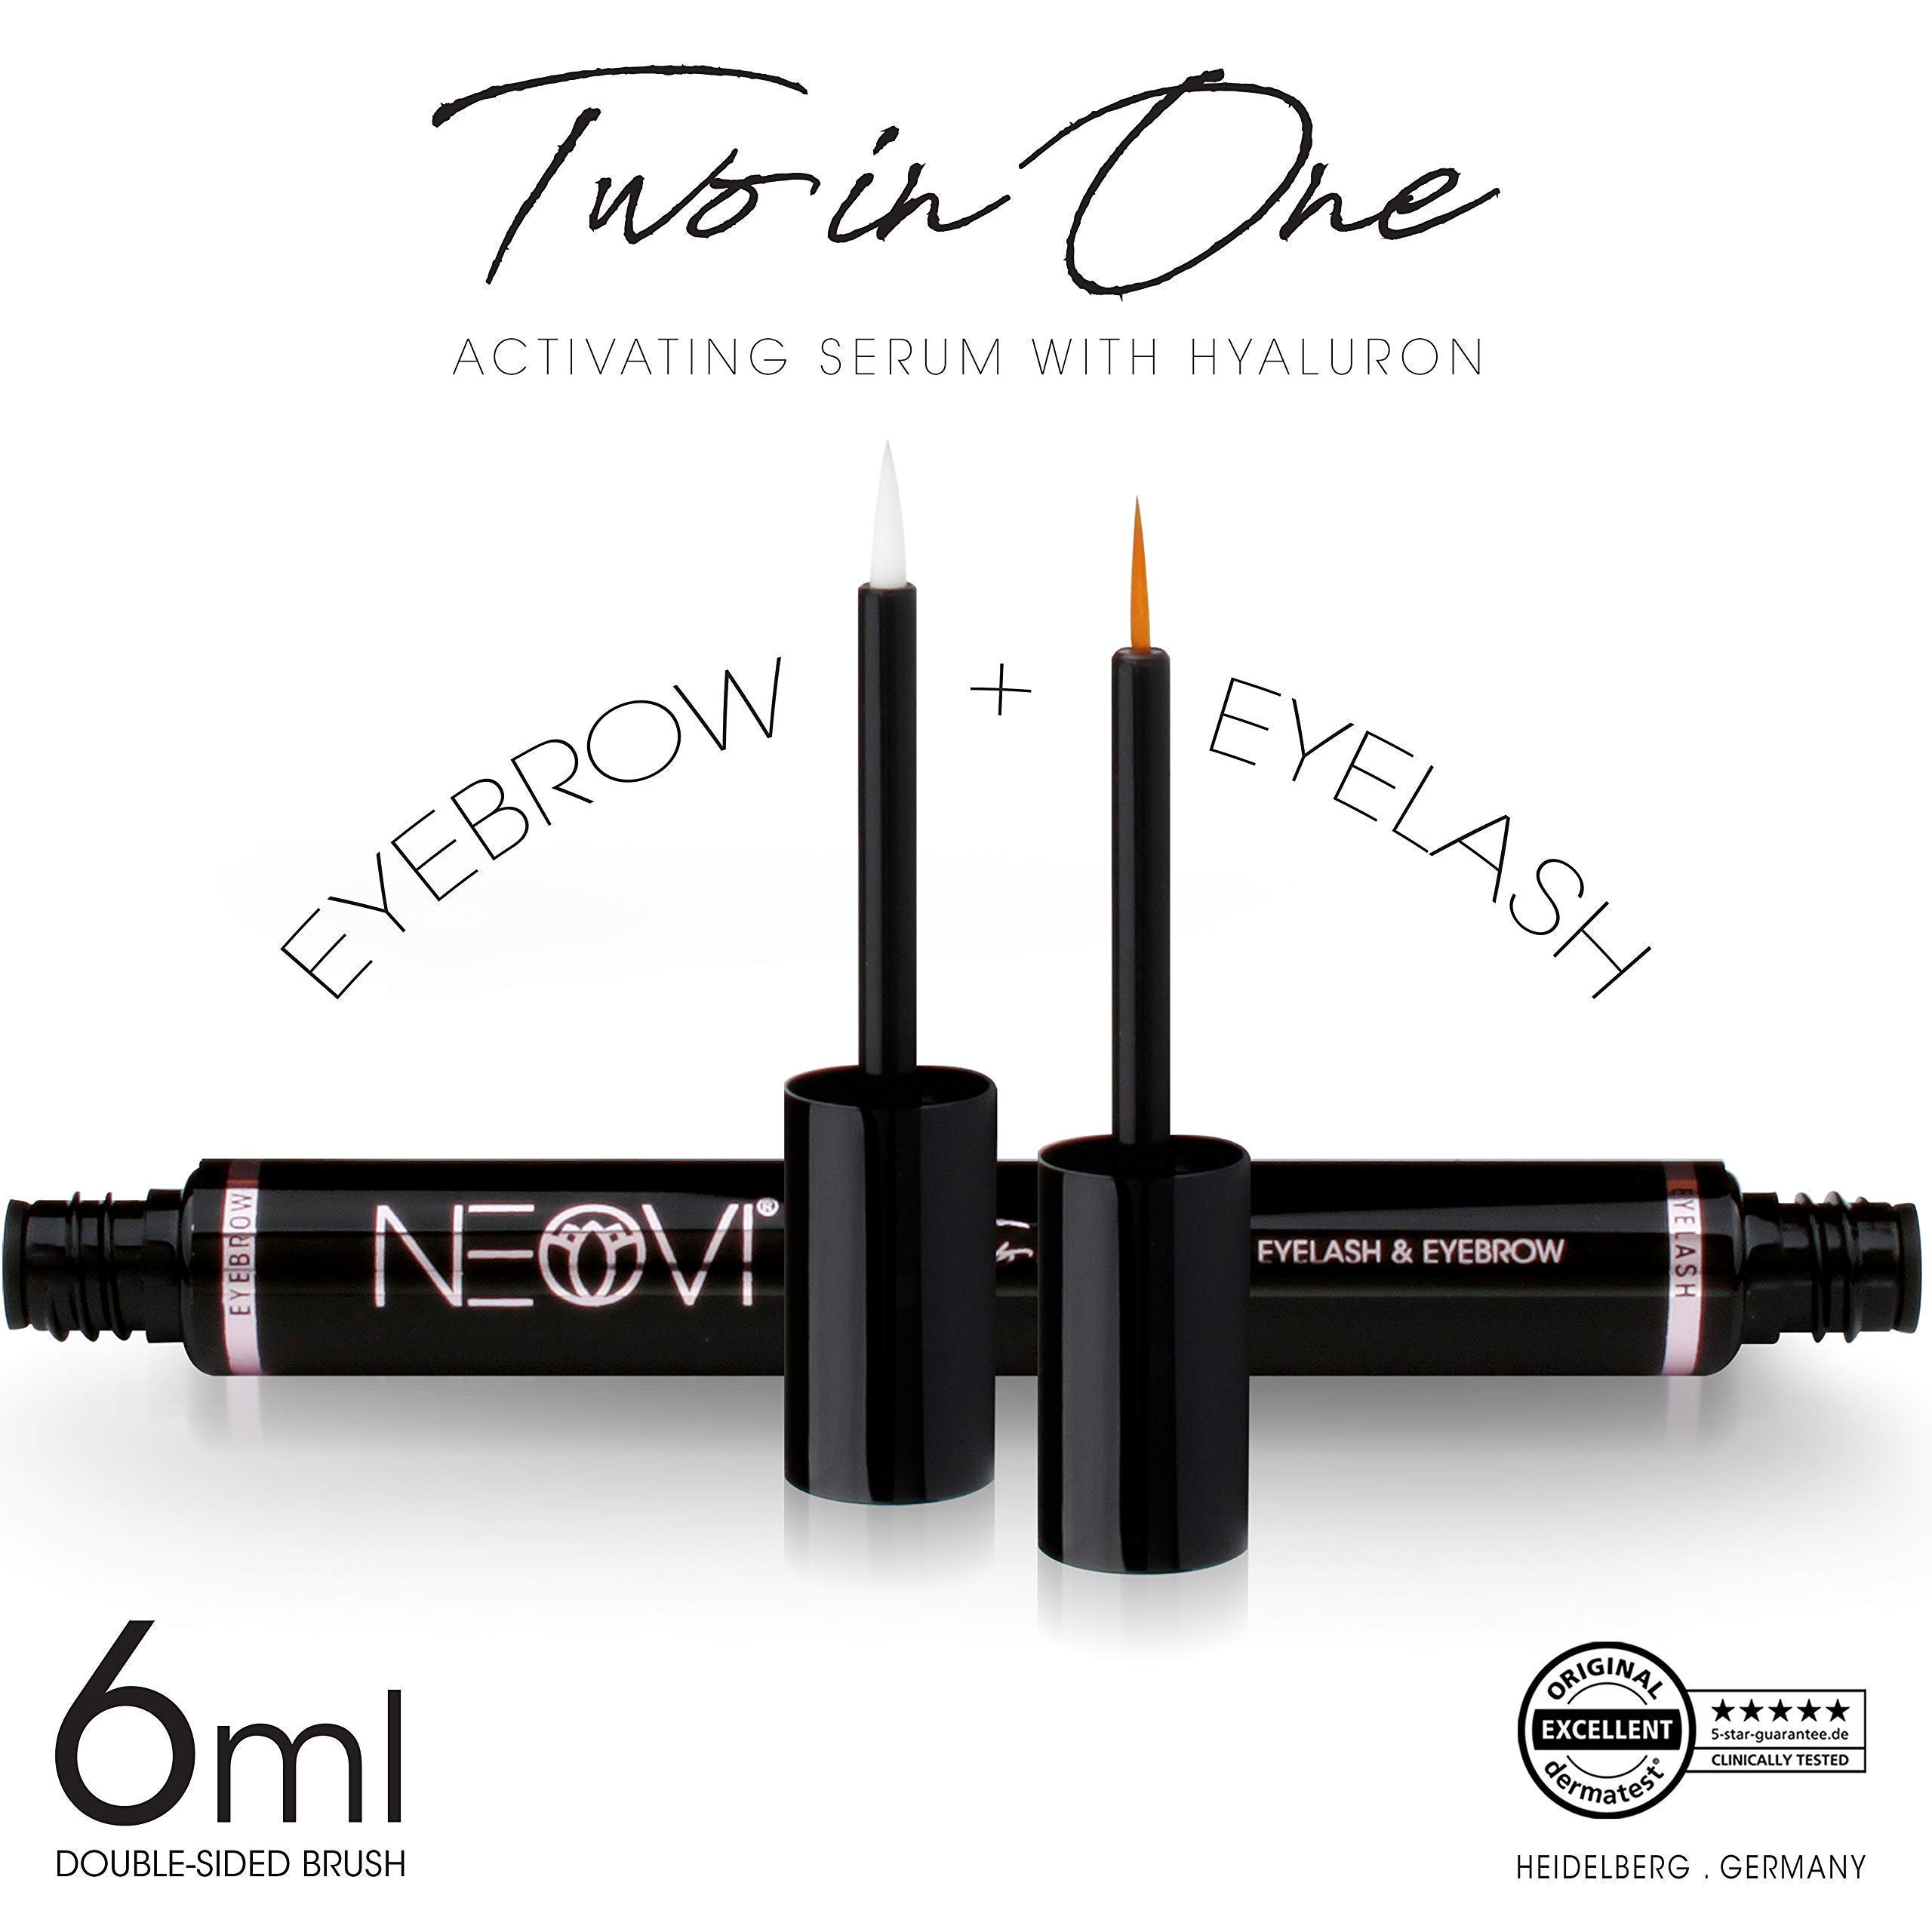 Eyelash and Eyebrow Growth Serum, Two in One 2 in 1 Growth Serum, Eyelash and Eyebrow Activating Enhancing Serum, 6 ml, 0.1 Fl Oz, Made in Germany.